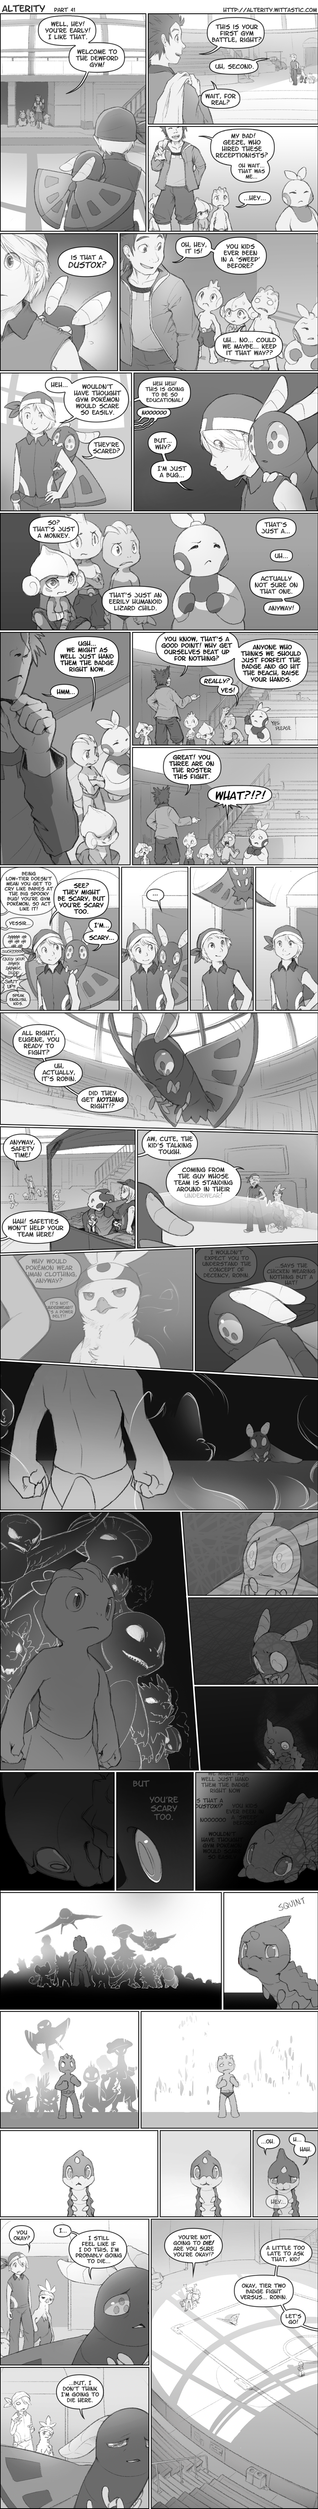 Alterity Part 41 by Mewitti